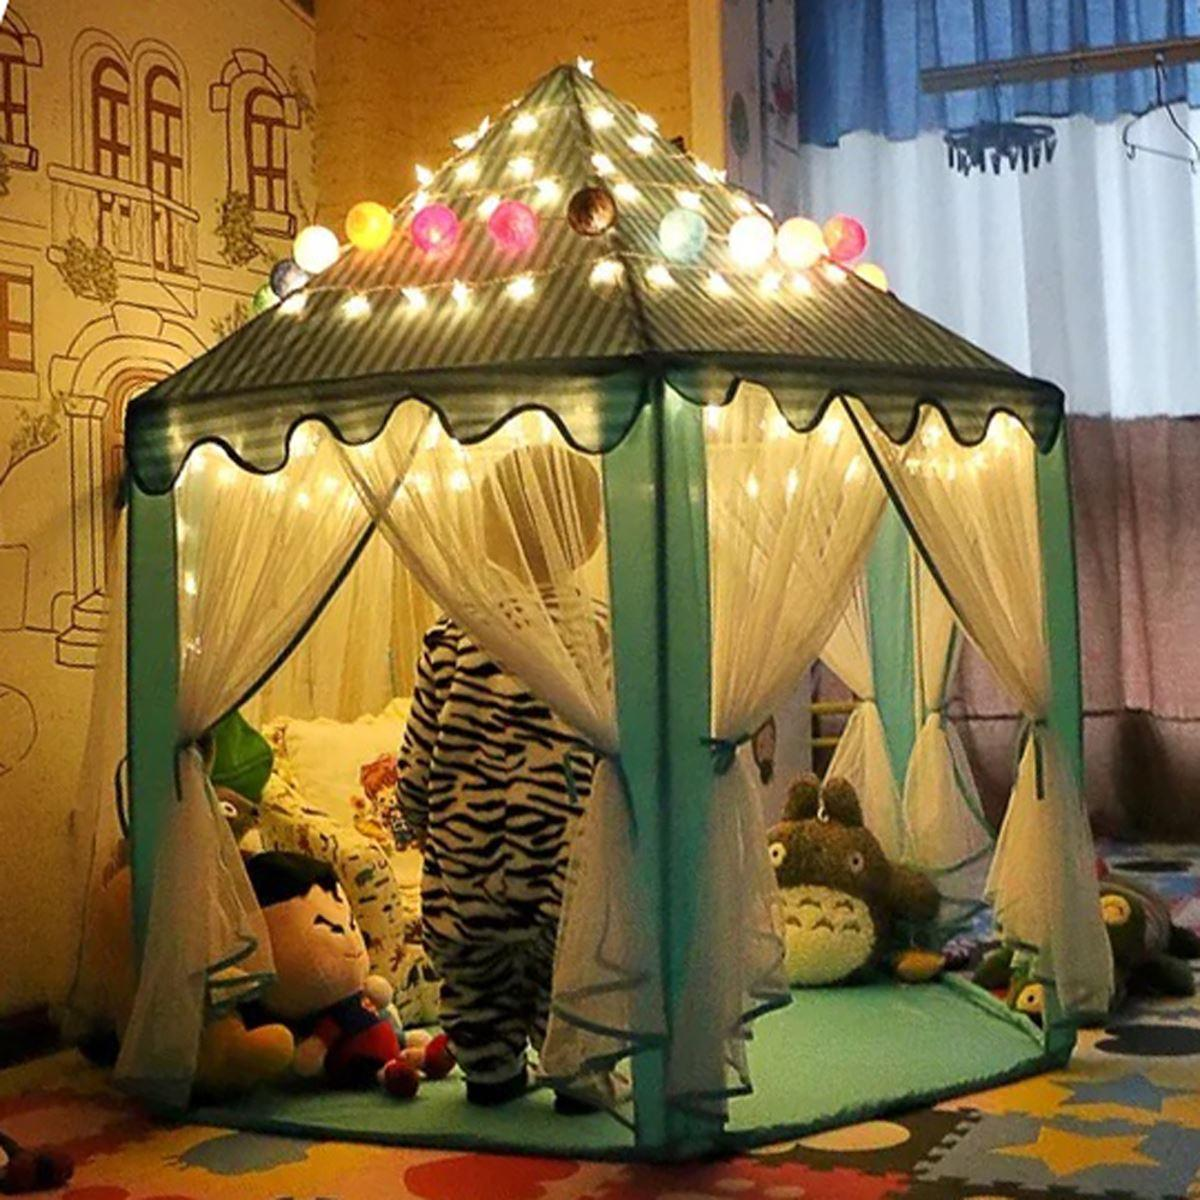 Portable Princess Castle Play Tent With Led Light Children Activity Fairy House Kids Funny Indoor Outdoor Playhouse Playing Toy Tents For Little Boys Large ... : childrens play tent - memphite.com